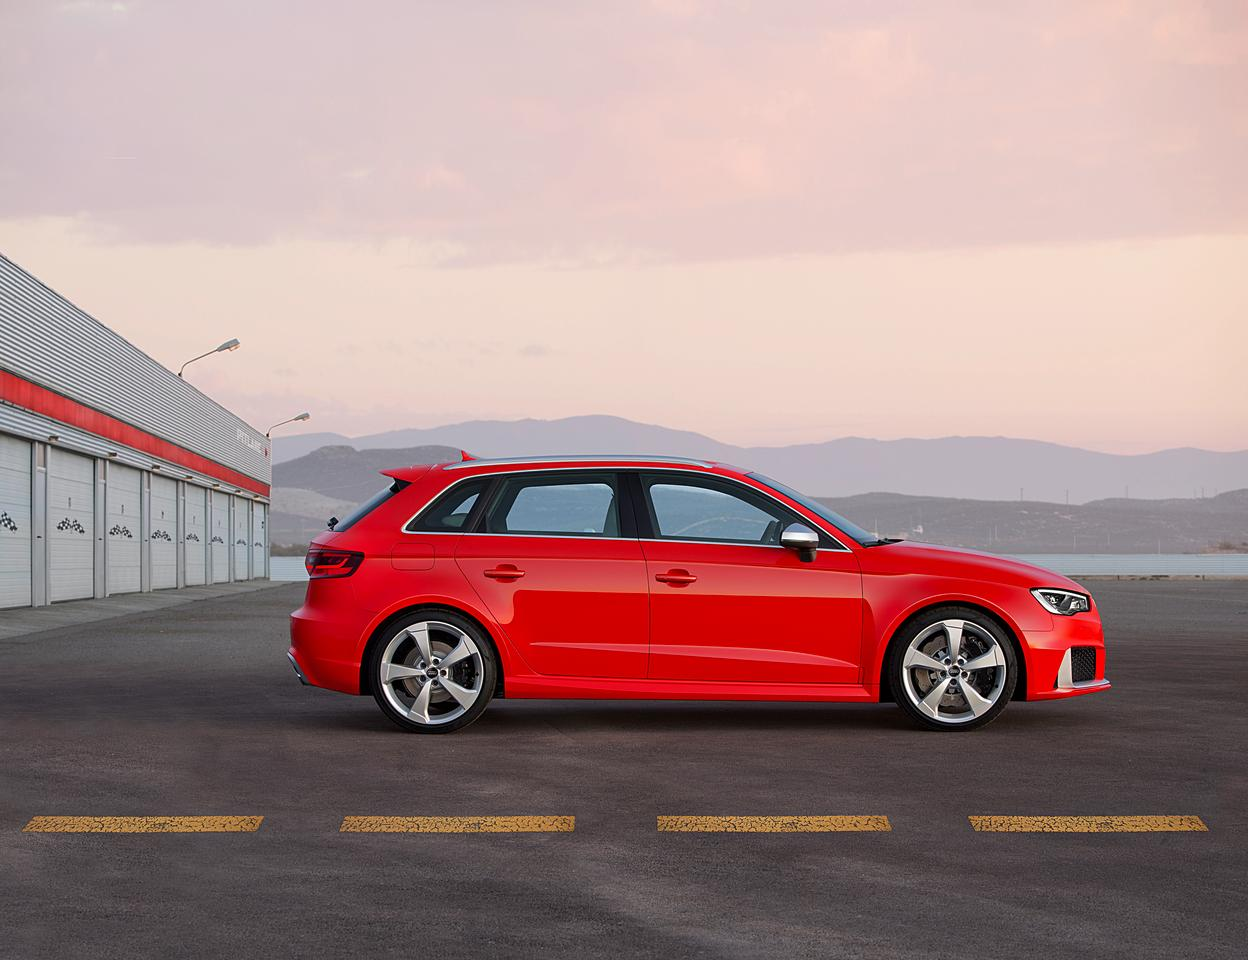 The RS3 is Audi's hottest hatch